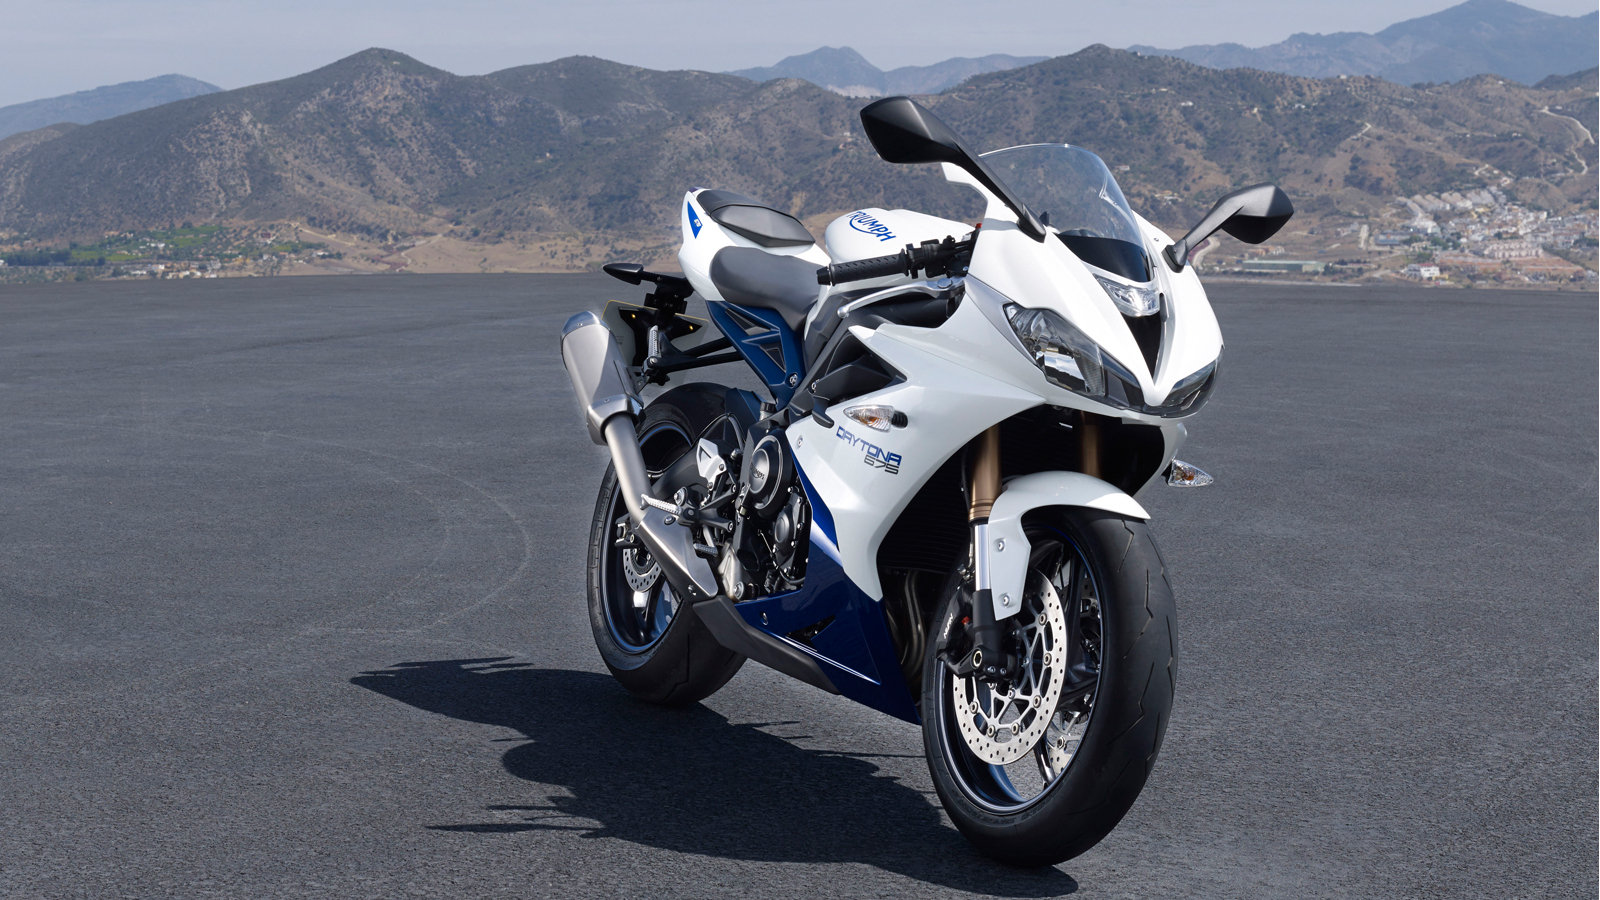 2016 triumph daytona 675 daytona 675 r picture 681708 motorcycle review top speed. Black Bedroom Furniture Sets. Home Design Ideas